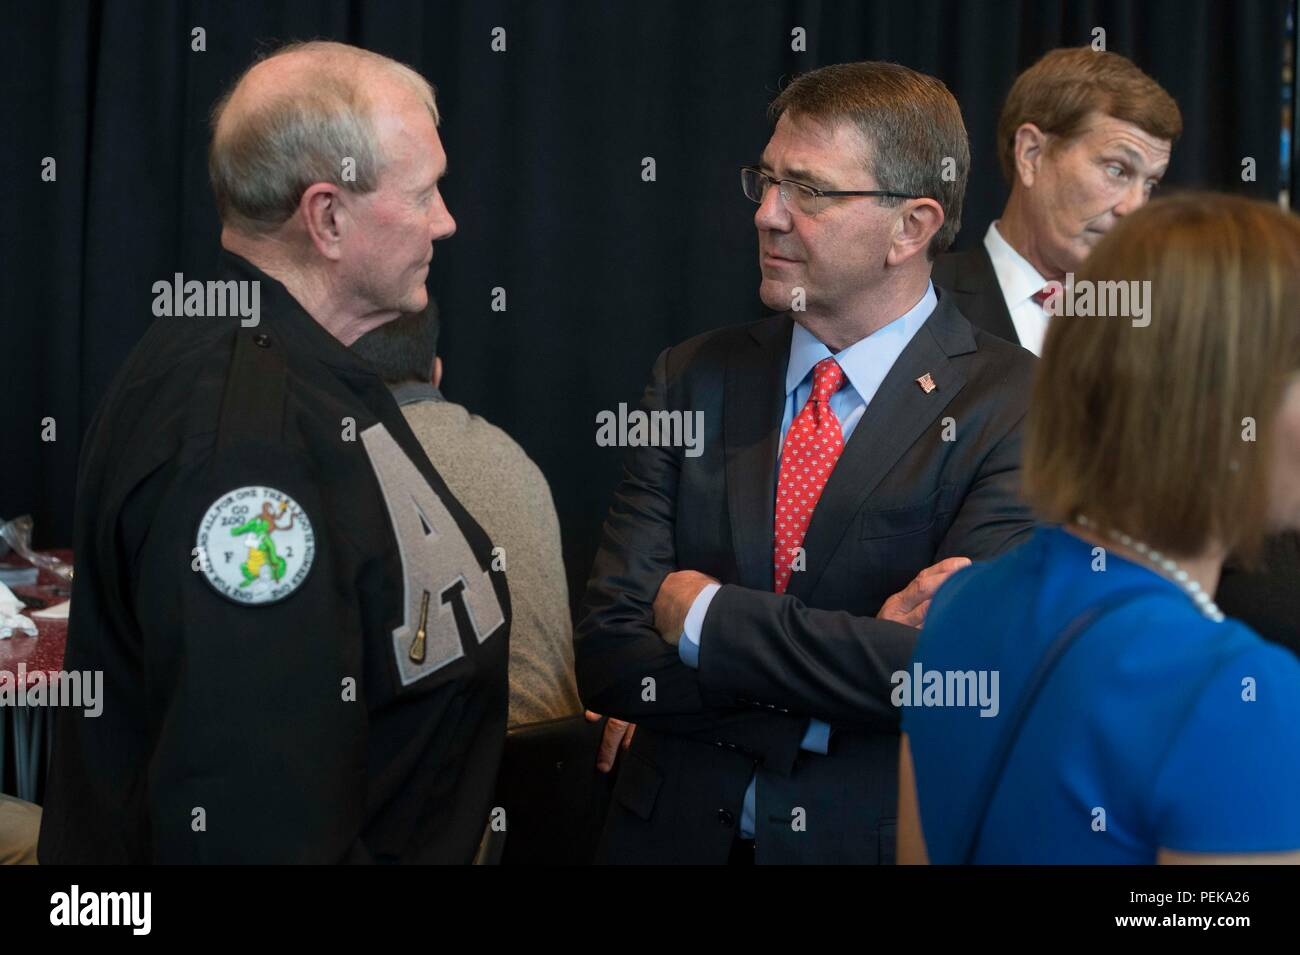 Secretary of Defense Ash Carter meets with former Chairman of the Joint Chiefs of  Staff Gen. Martin Dempsey at the 2015 Army Navy Game in Philadelphia, Dec. 12, 2015.  (DoD photo by Mass Communication Specialist 1st Class Tim D. Godbee)(Released) - Stock Image